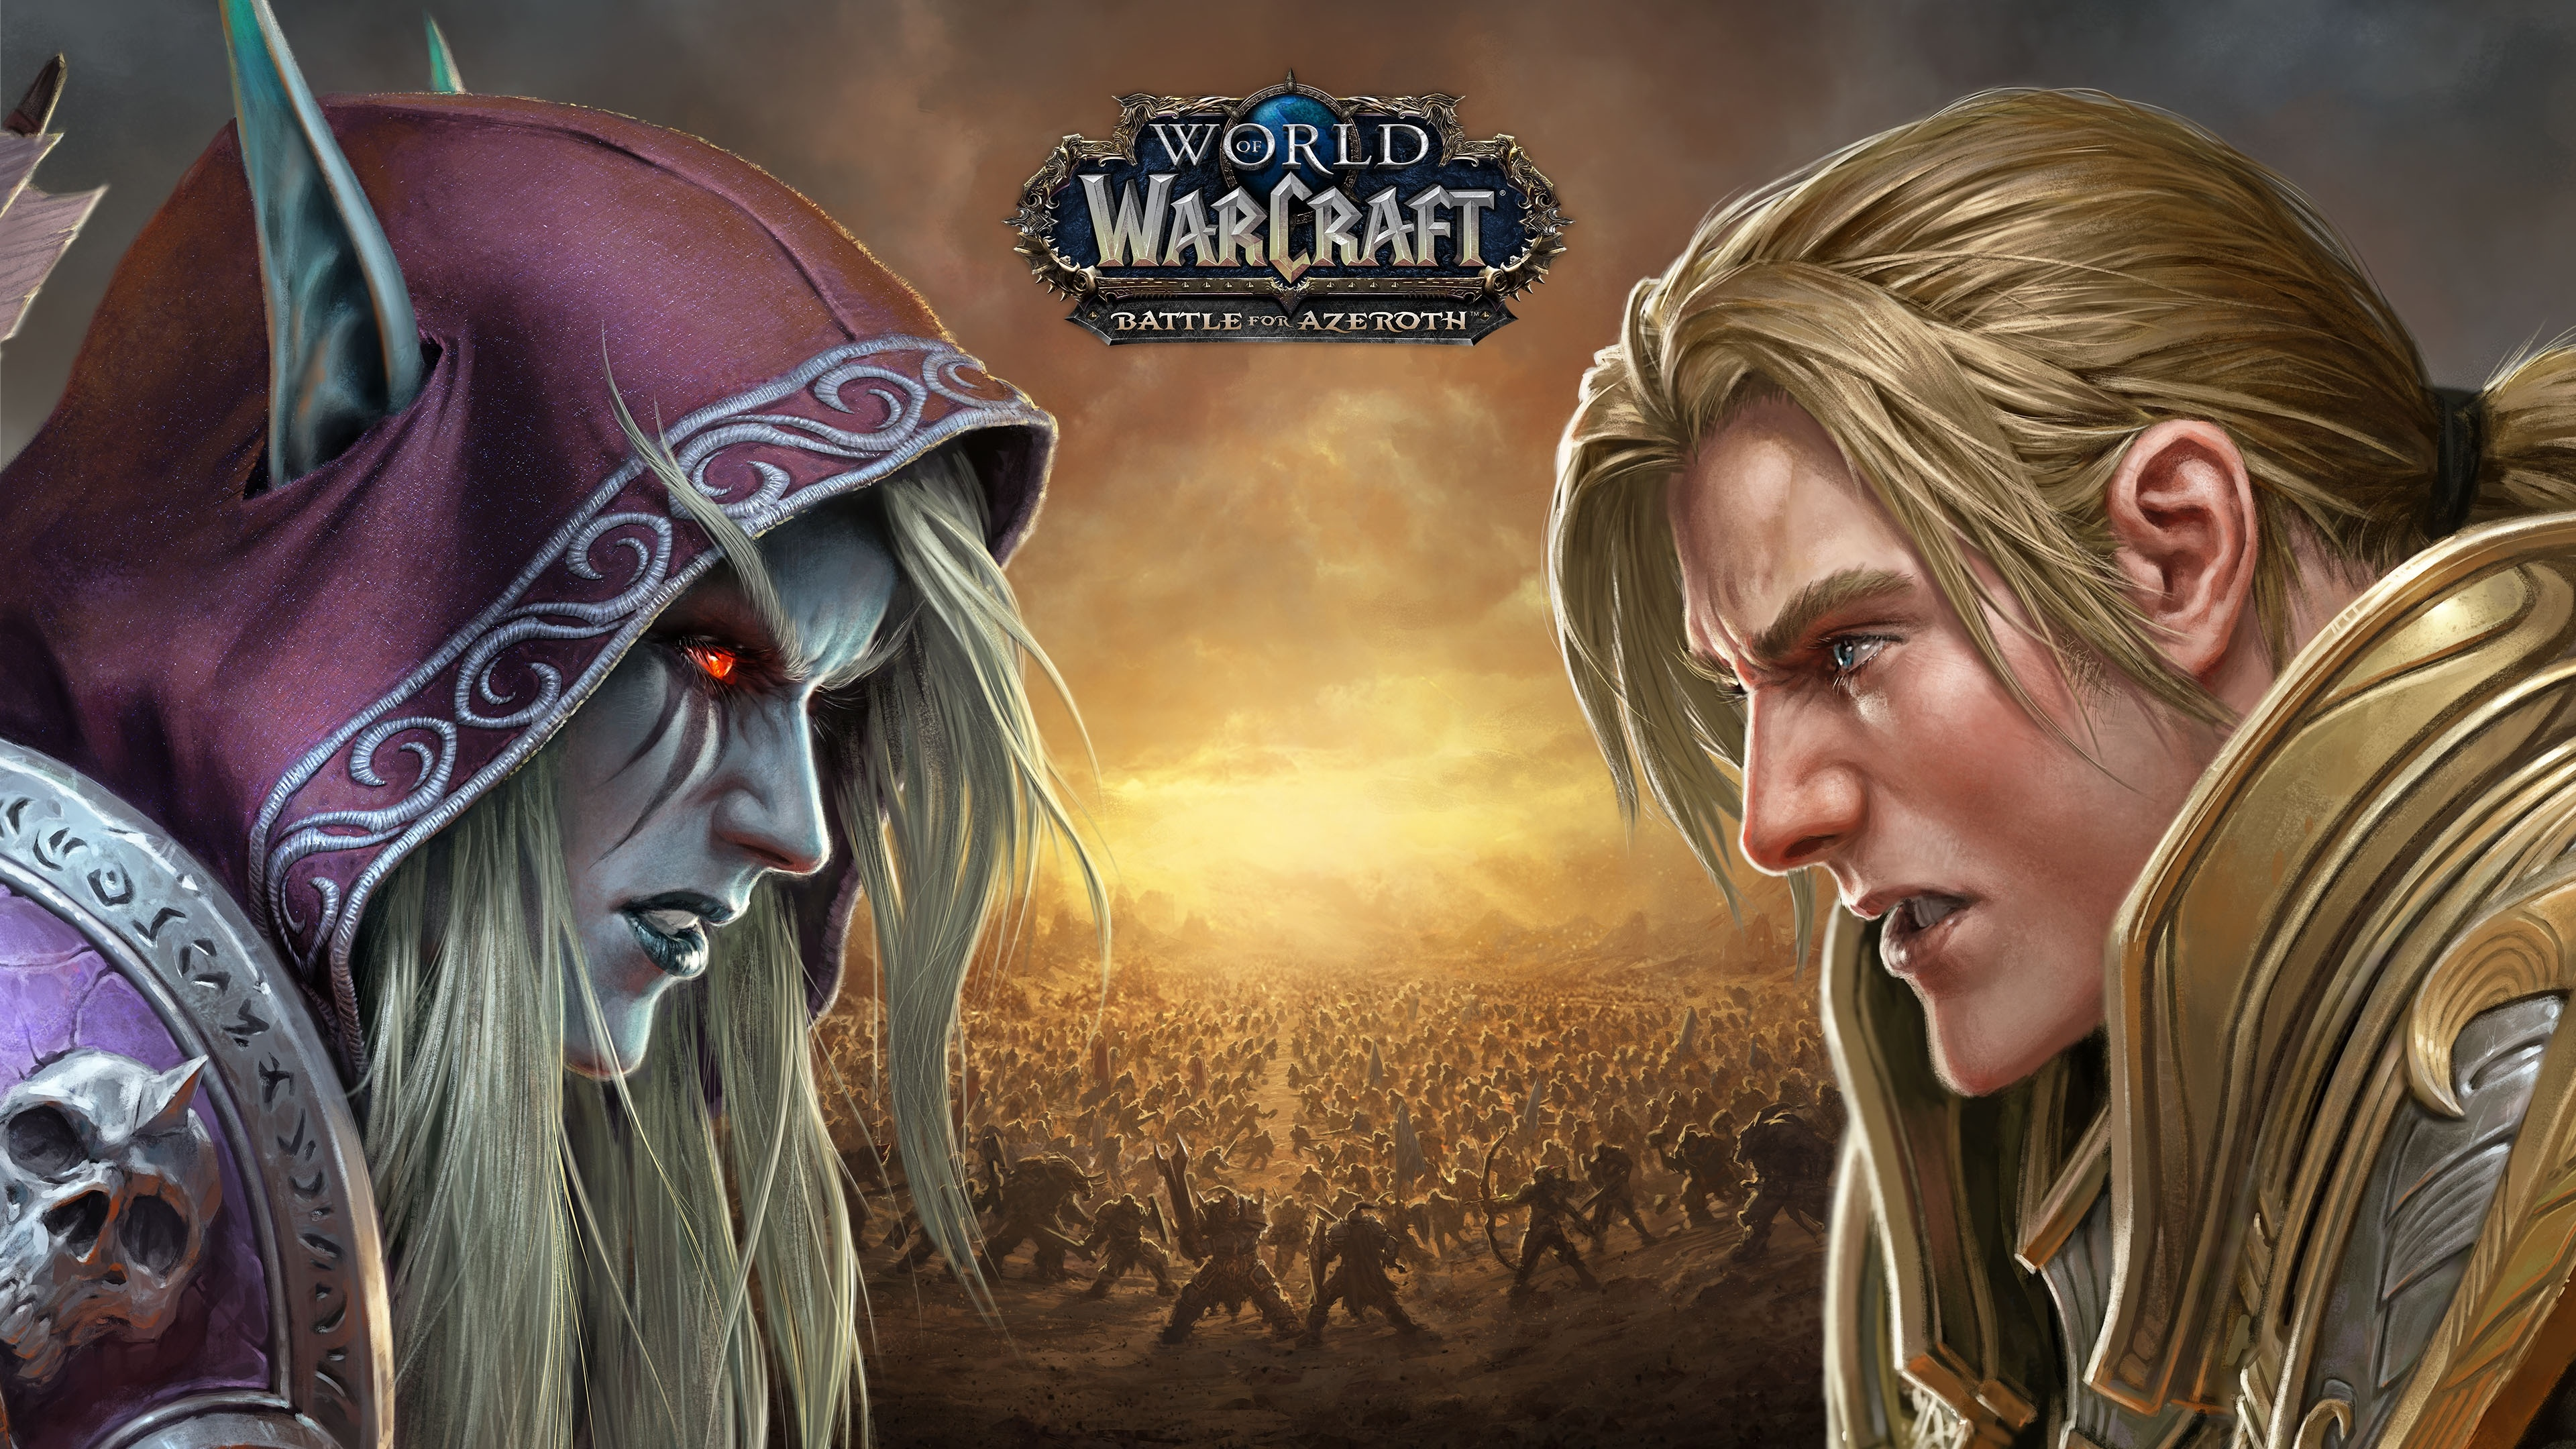 """World of Warcraft: Battle for Azeroth"" Receives Release Date - Seventh Expansion Hitting Shelves Aug. 14"